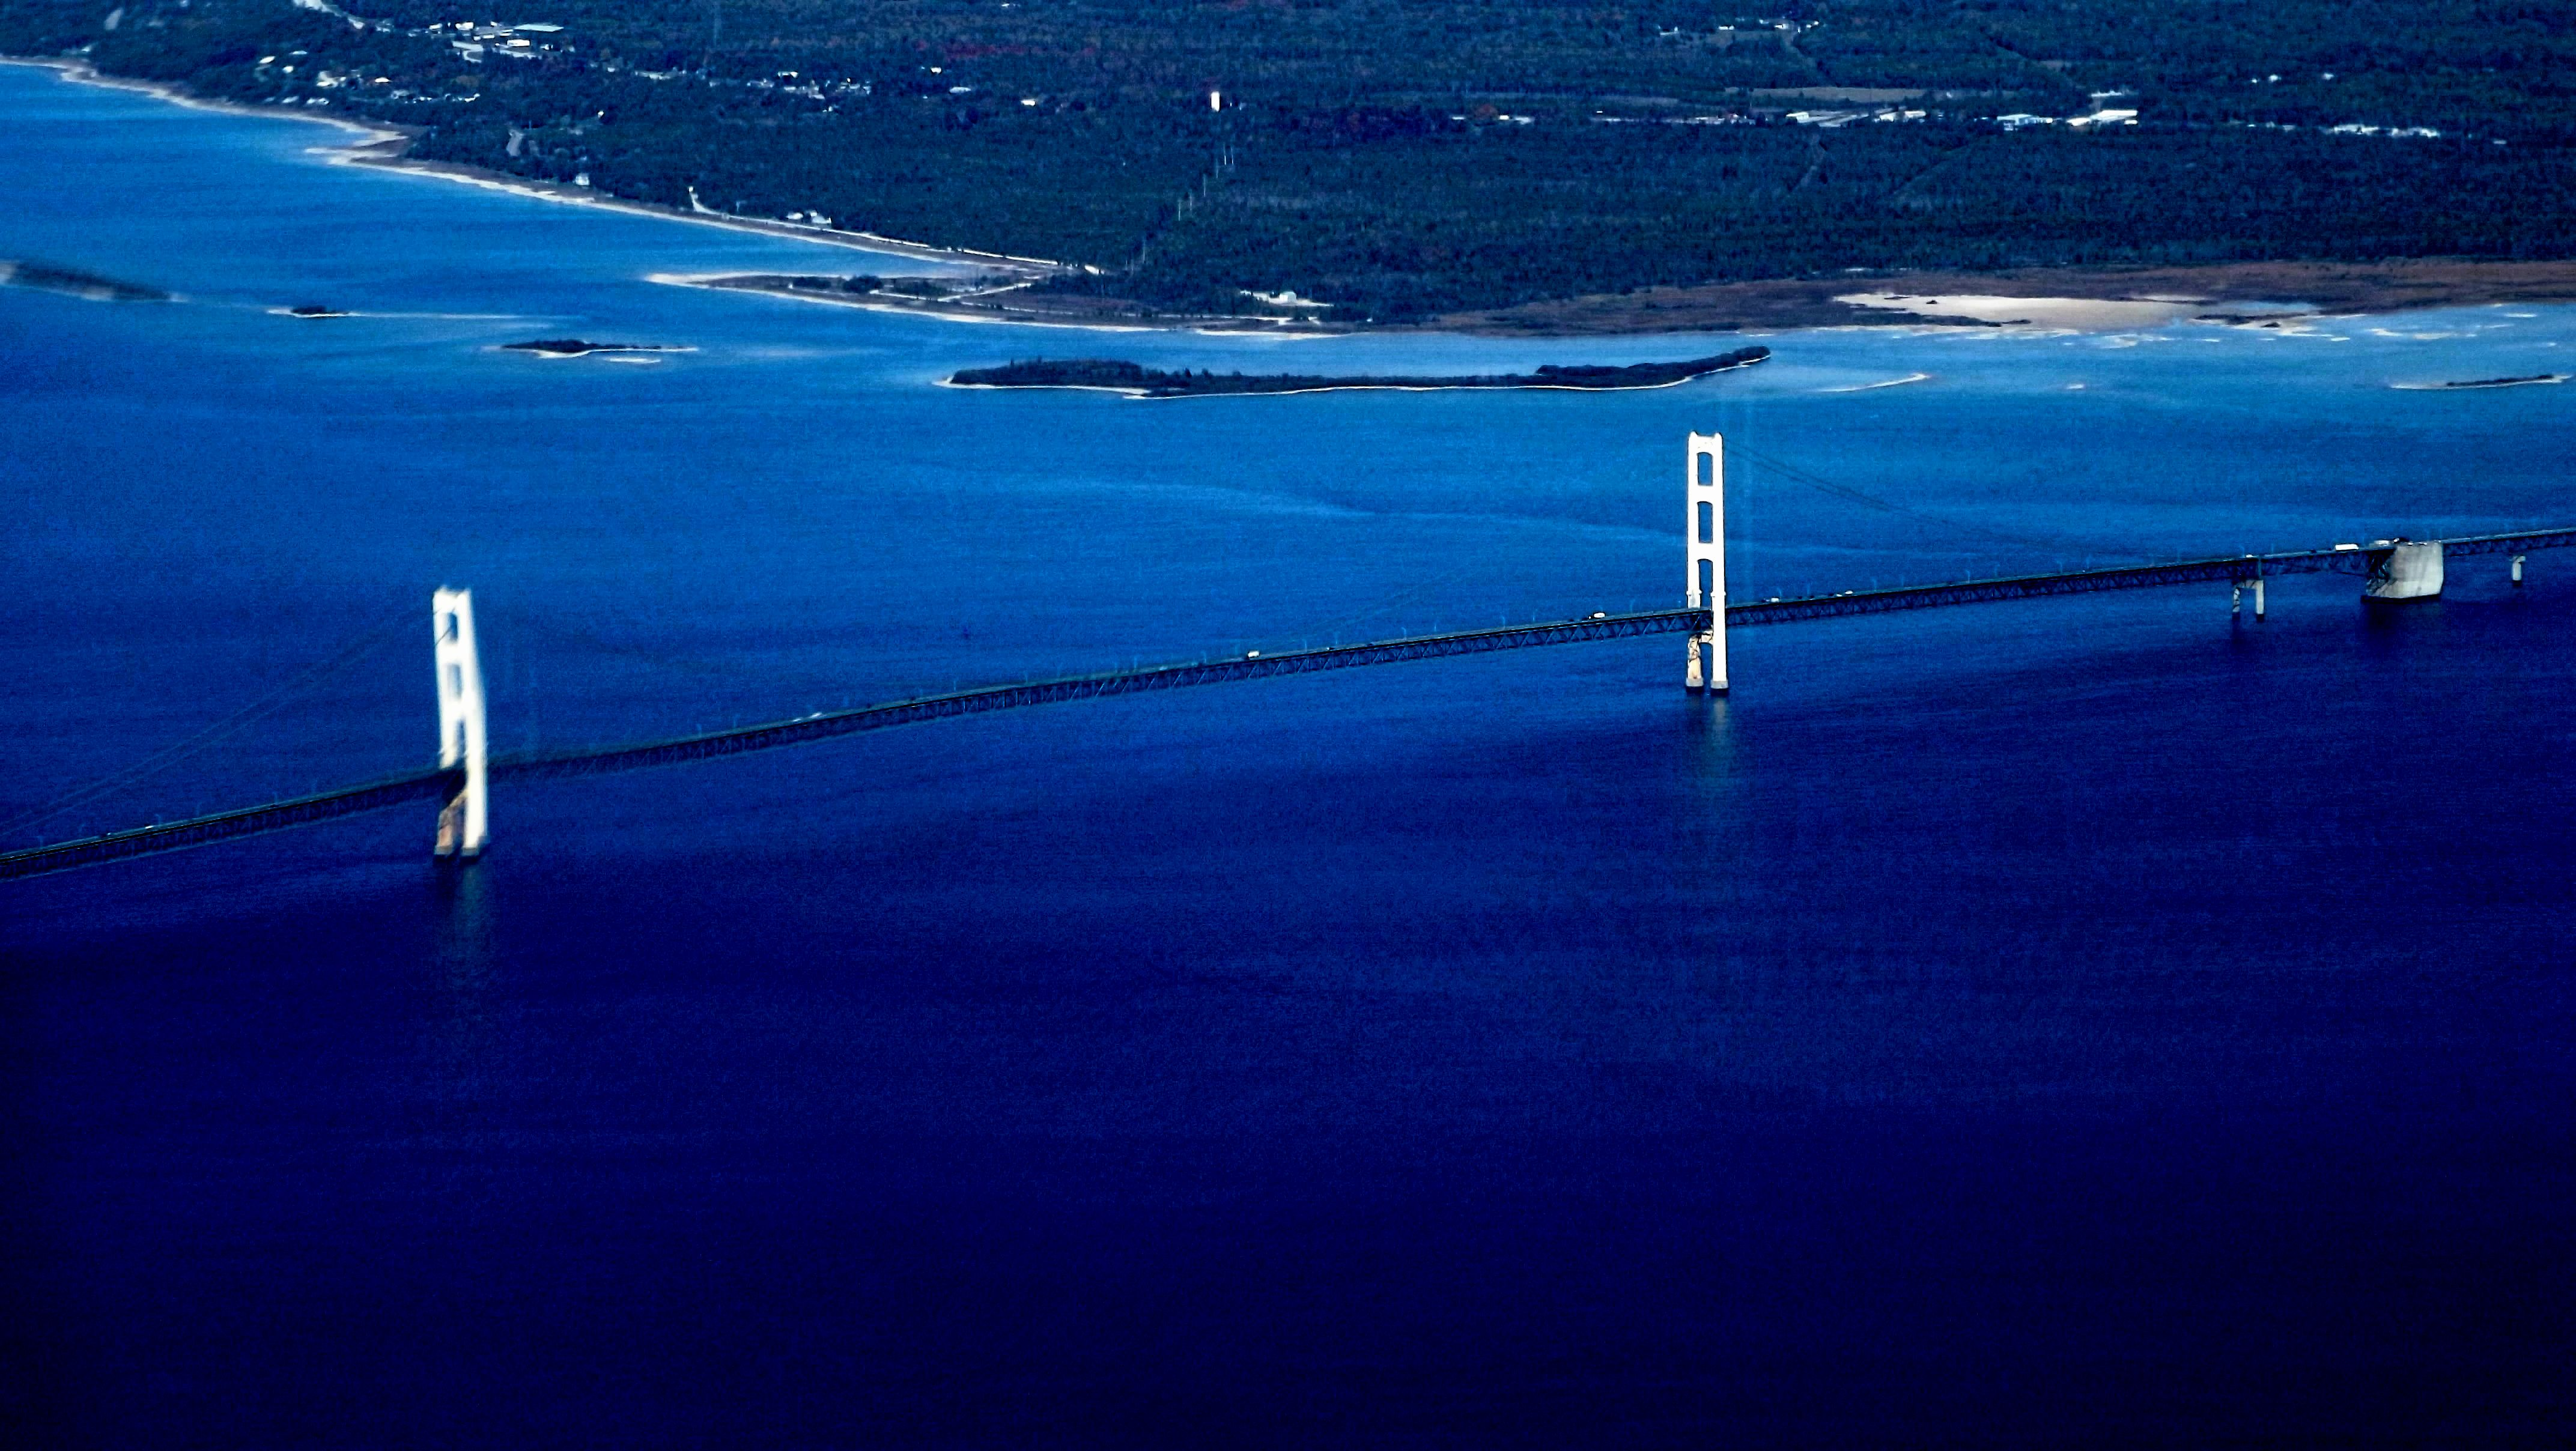 aerial view of the Mackinac Bridge